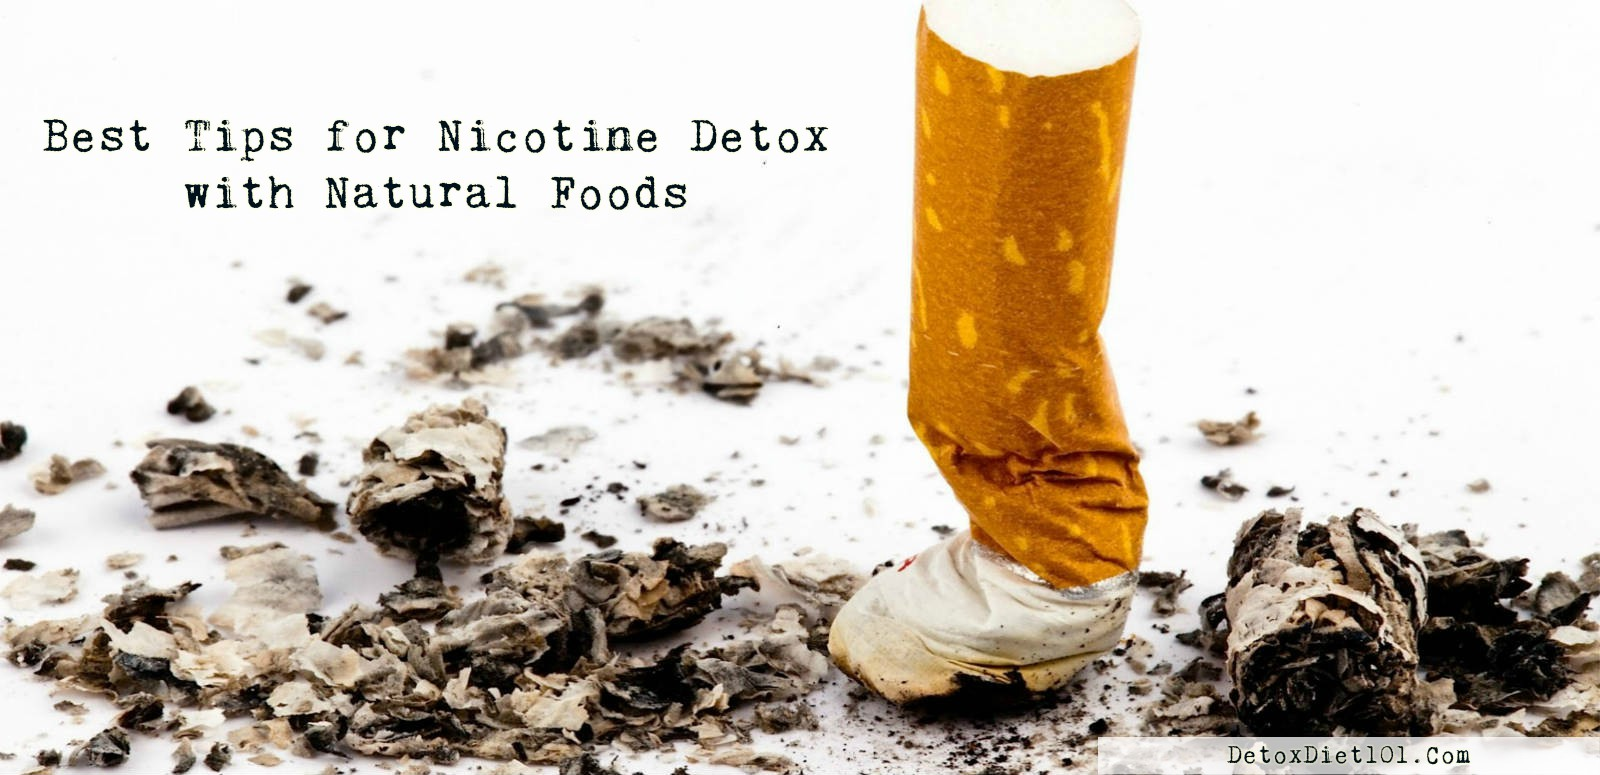 Best Tips for Nicotine Detox with Natural Foods